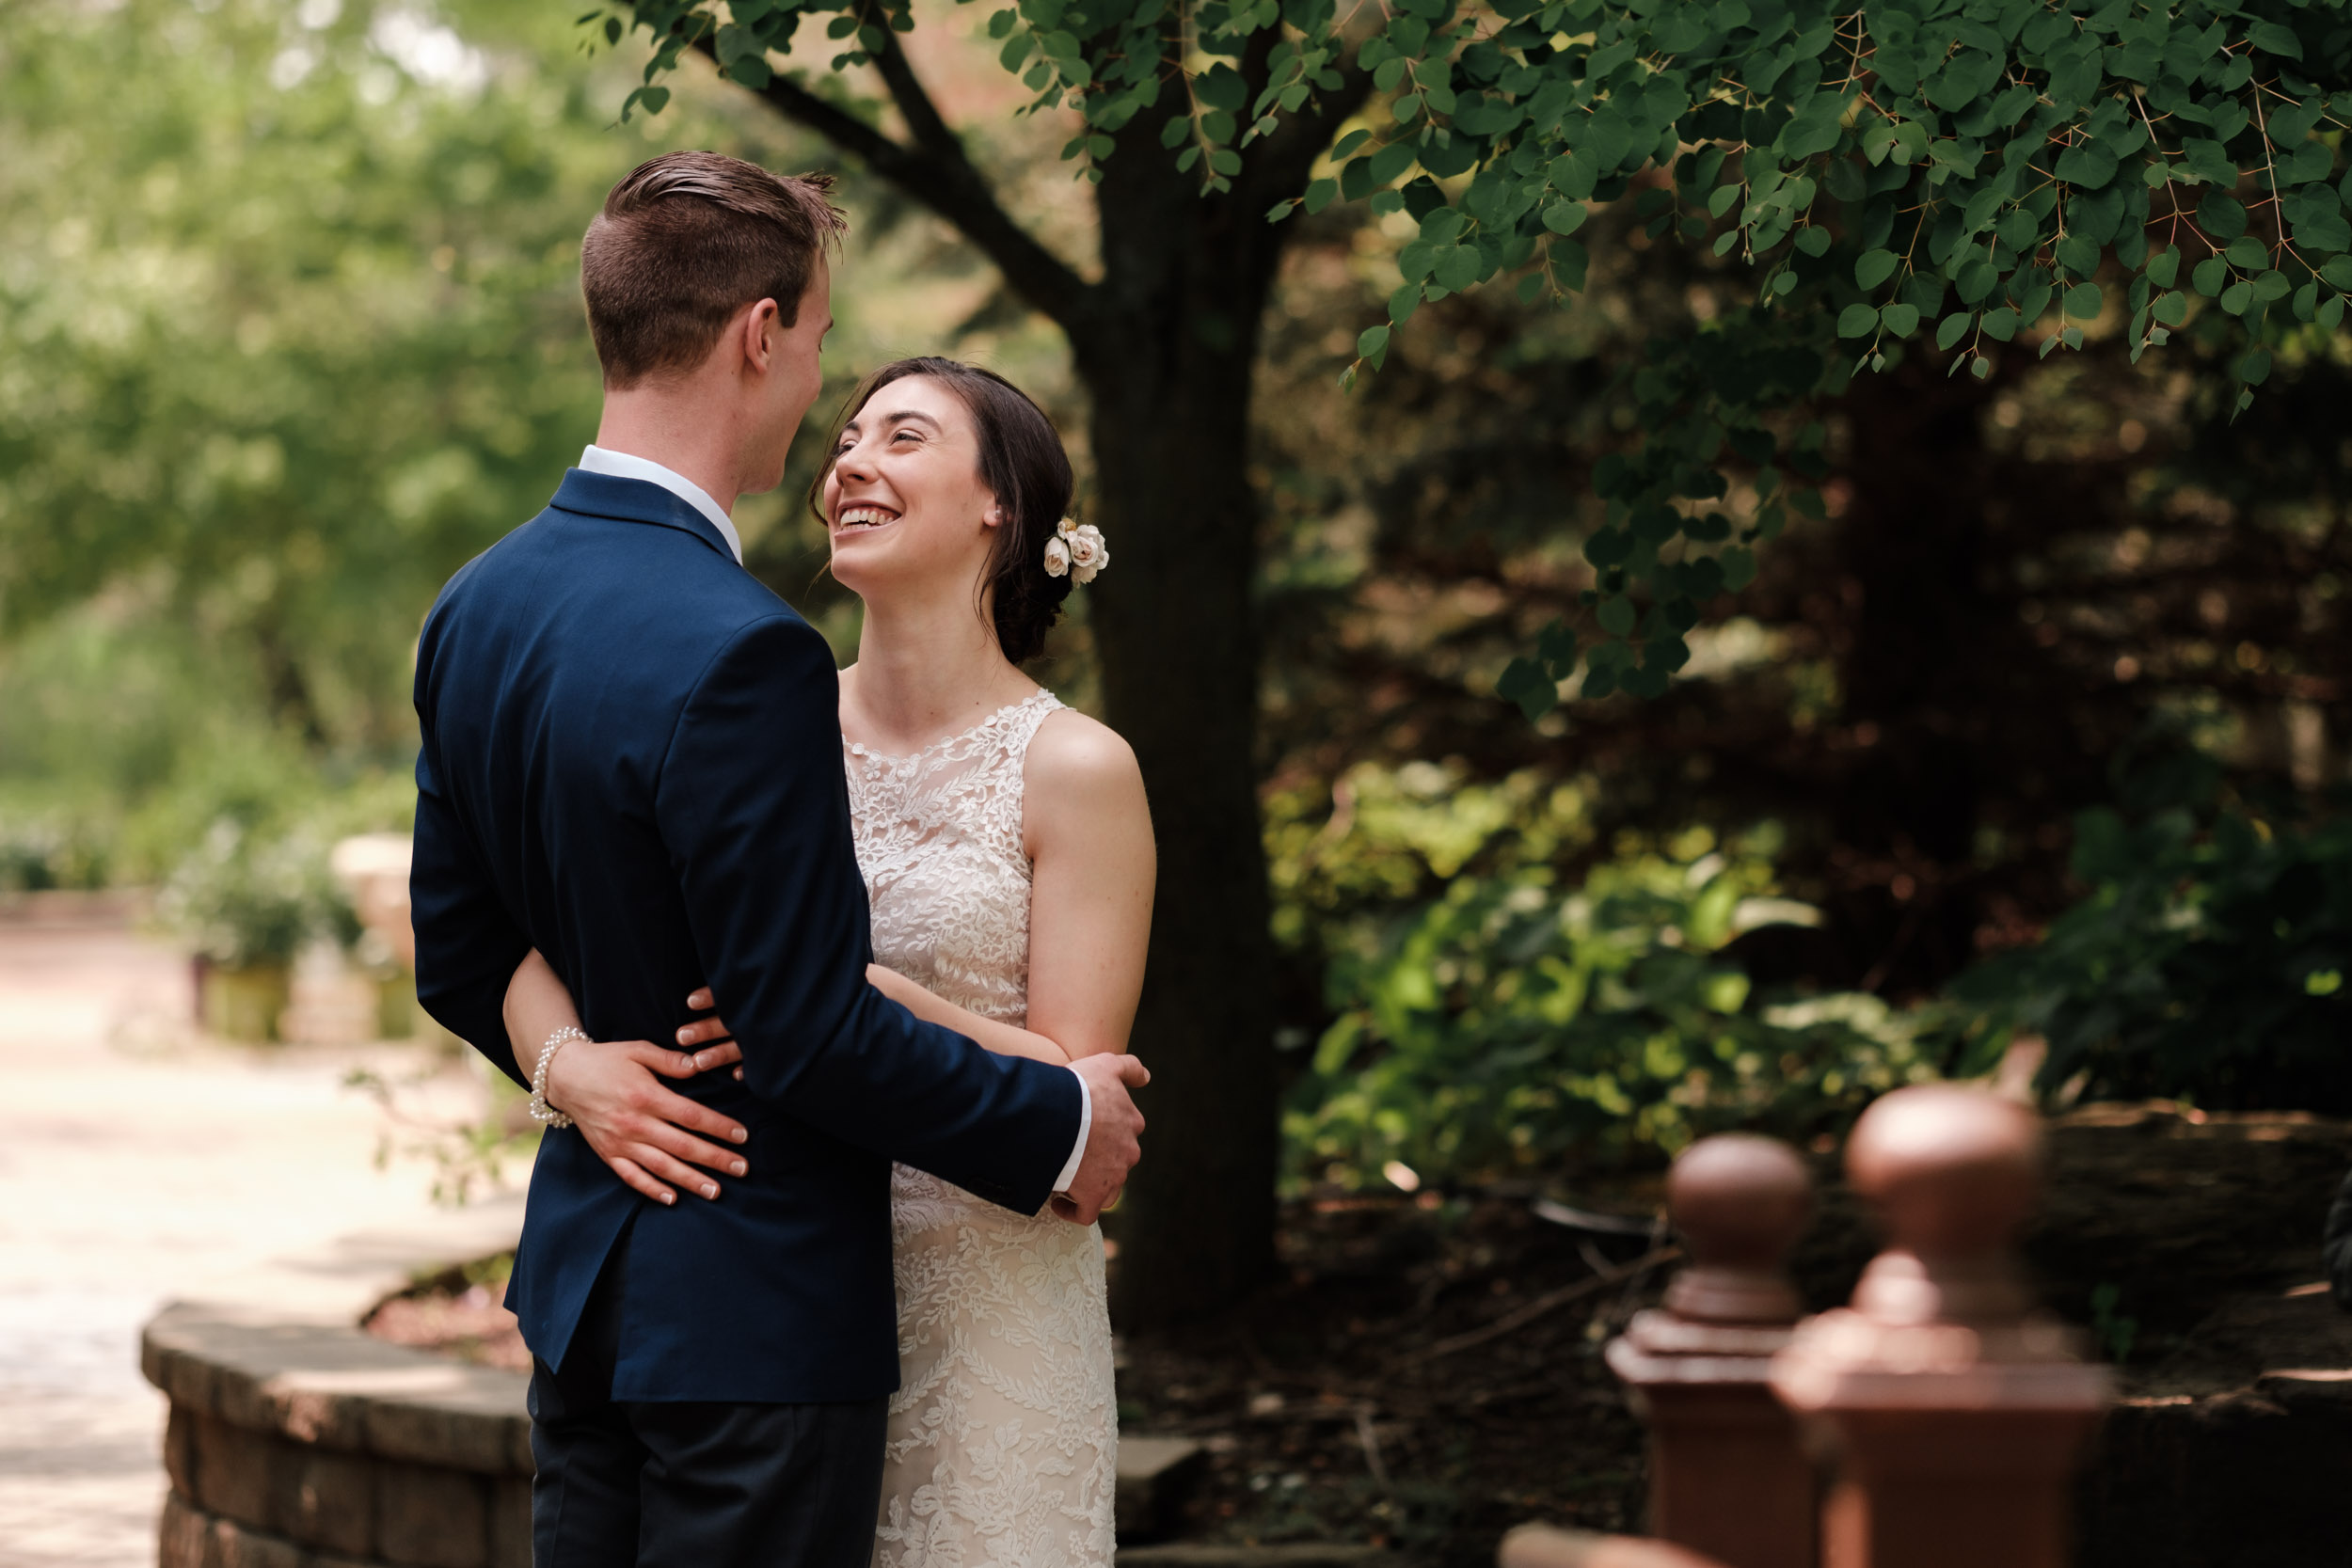 rockford wedding photographer natural first look gardens of woodstock bride floral crown and groom floral tie blue suit